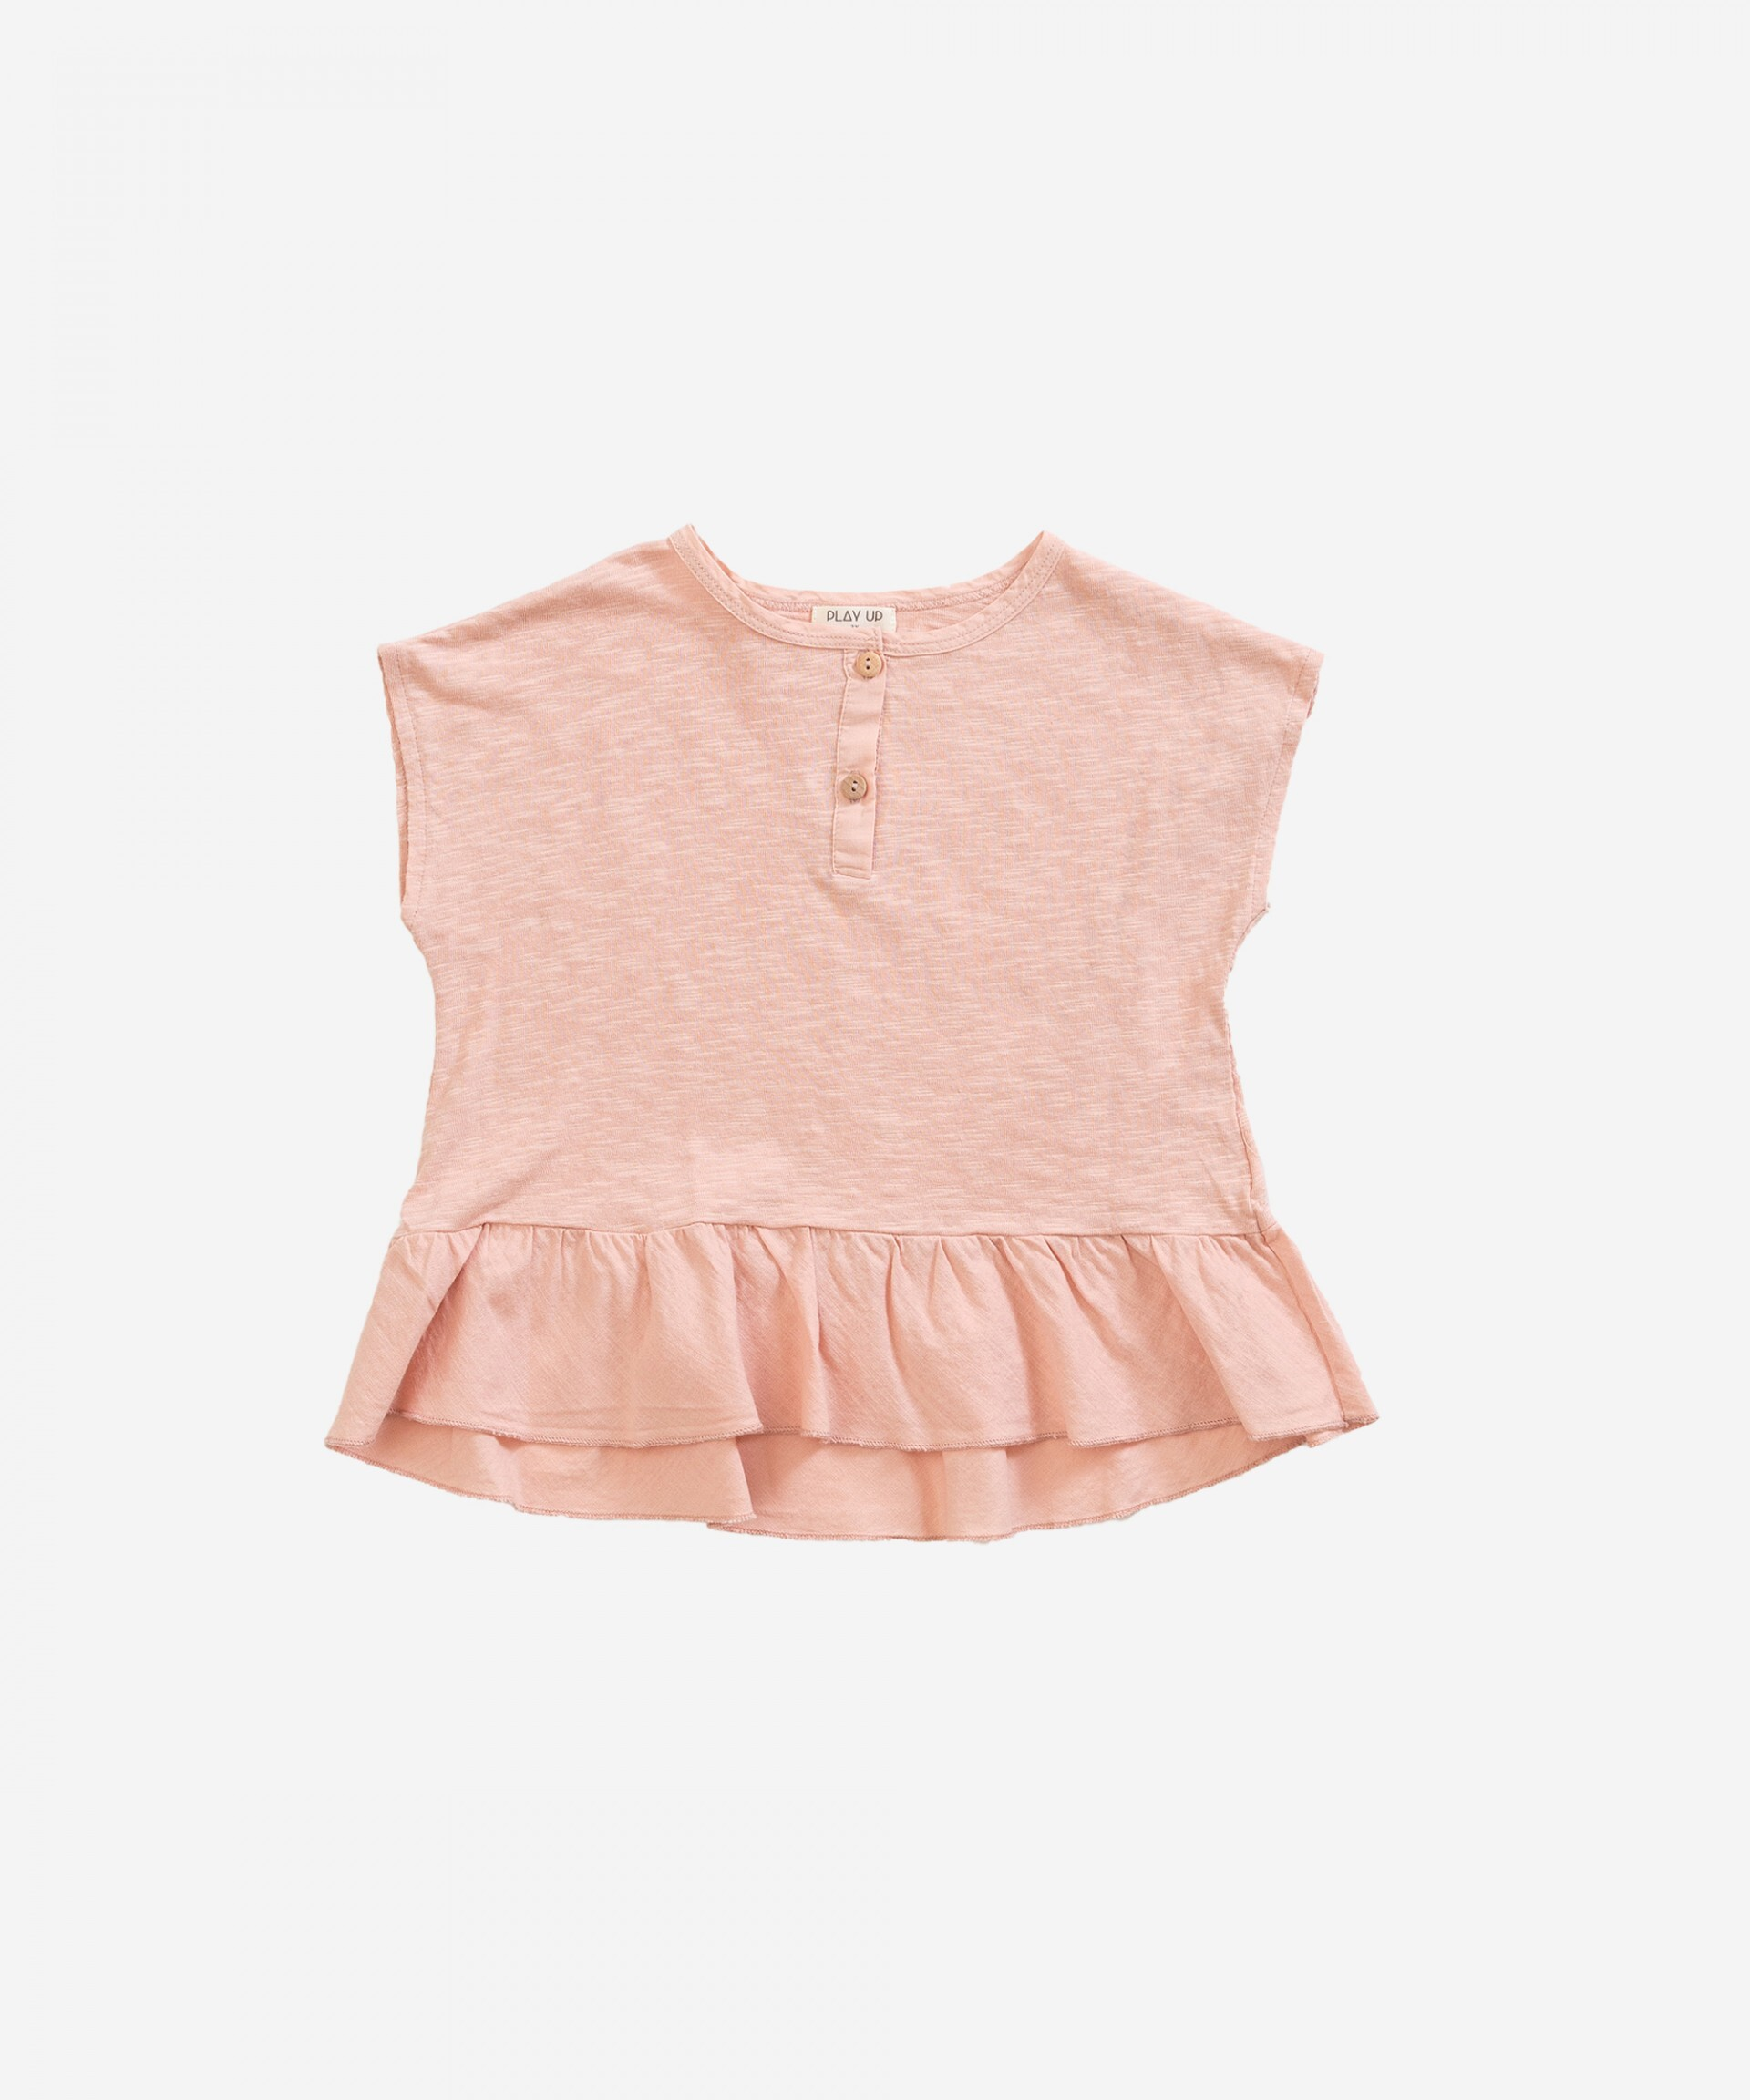 Play Up プレイアップ T-shirt in organic cotton with frill | Weaving size:3Y(100)ー8Y(130)